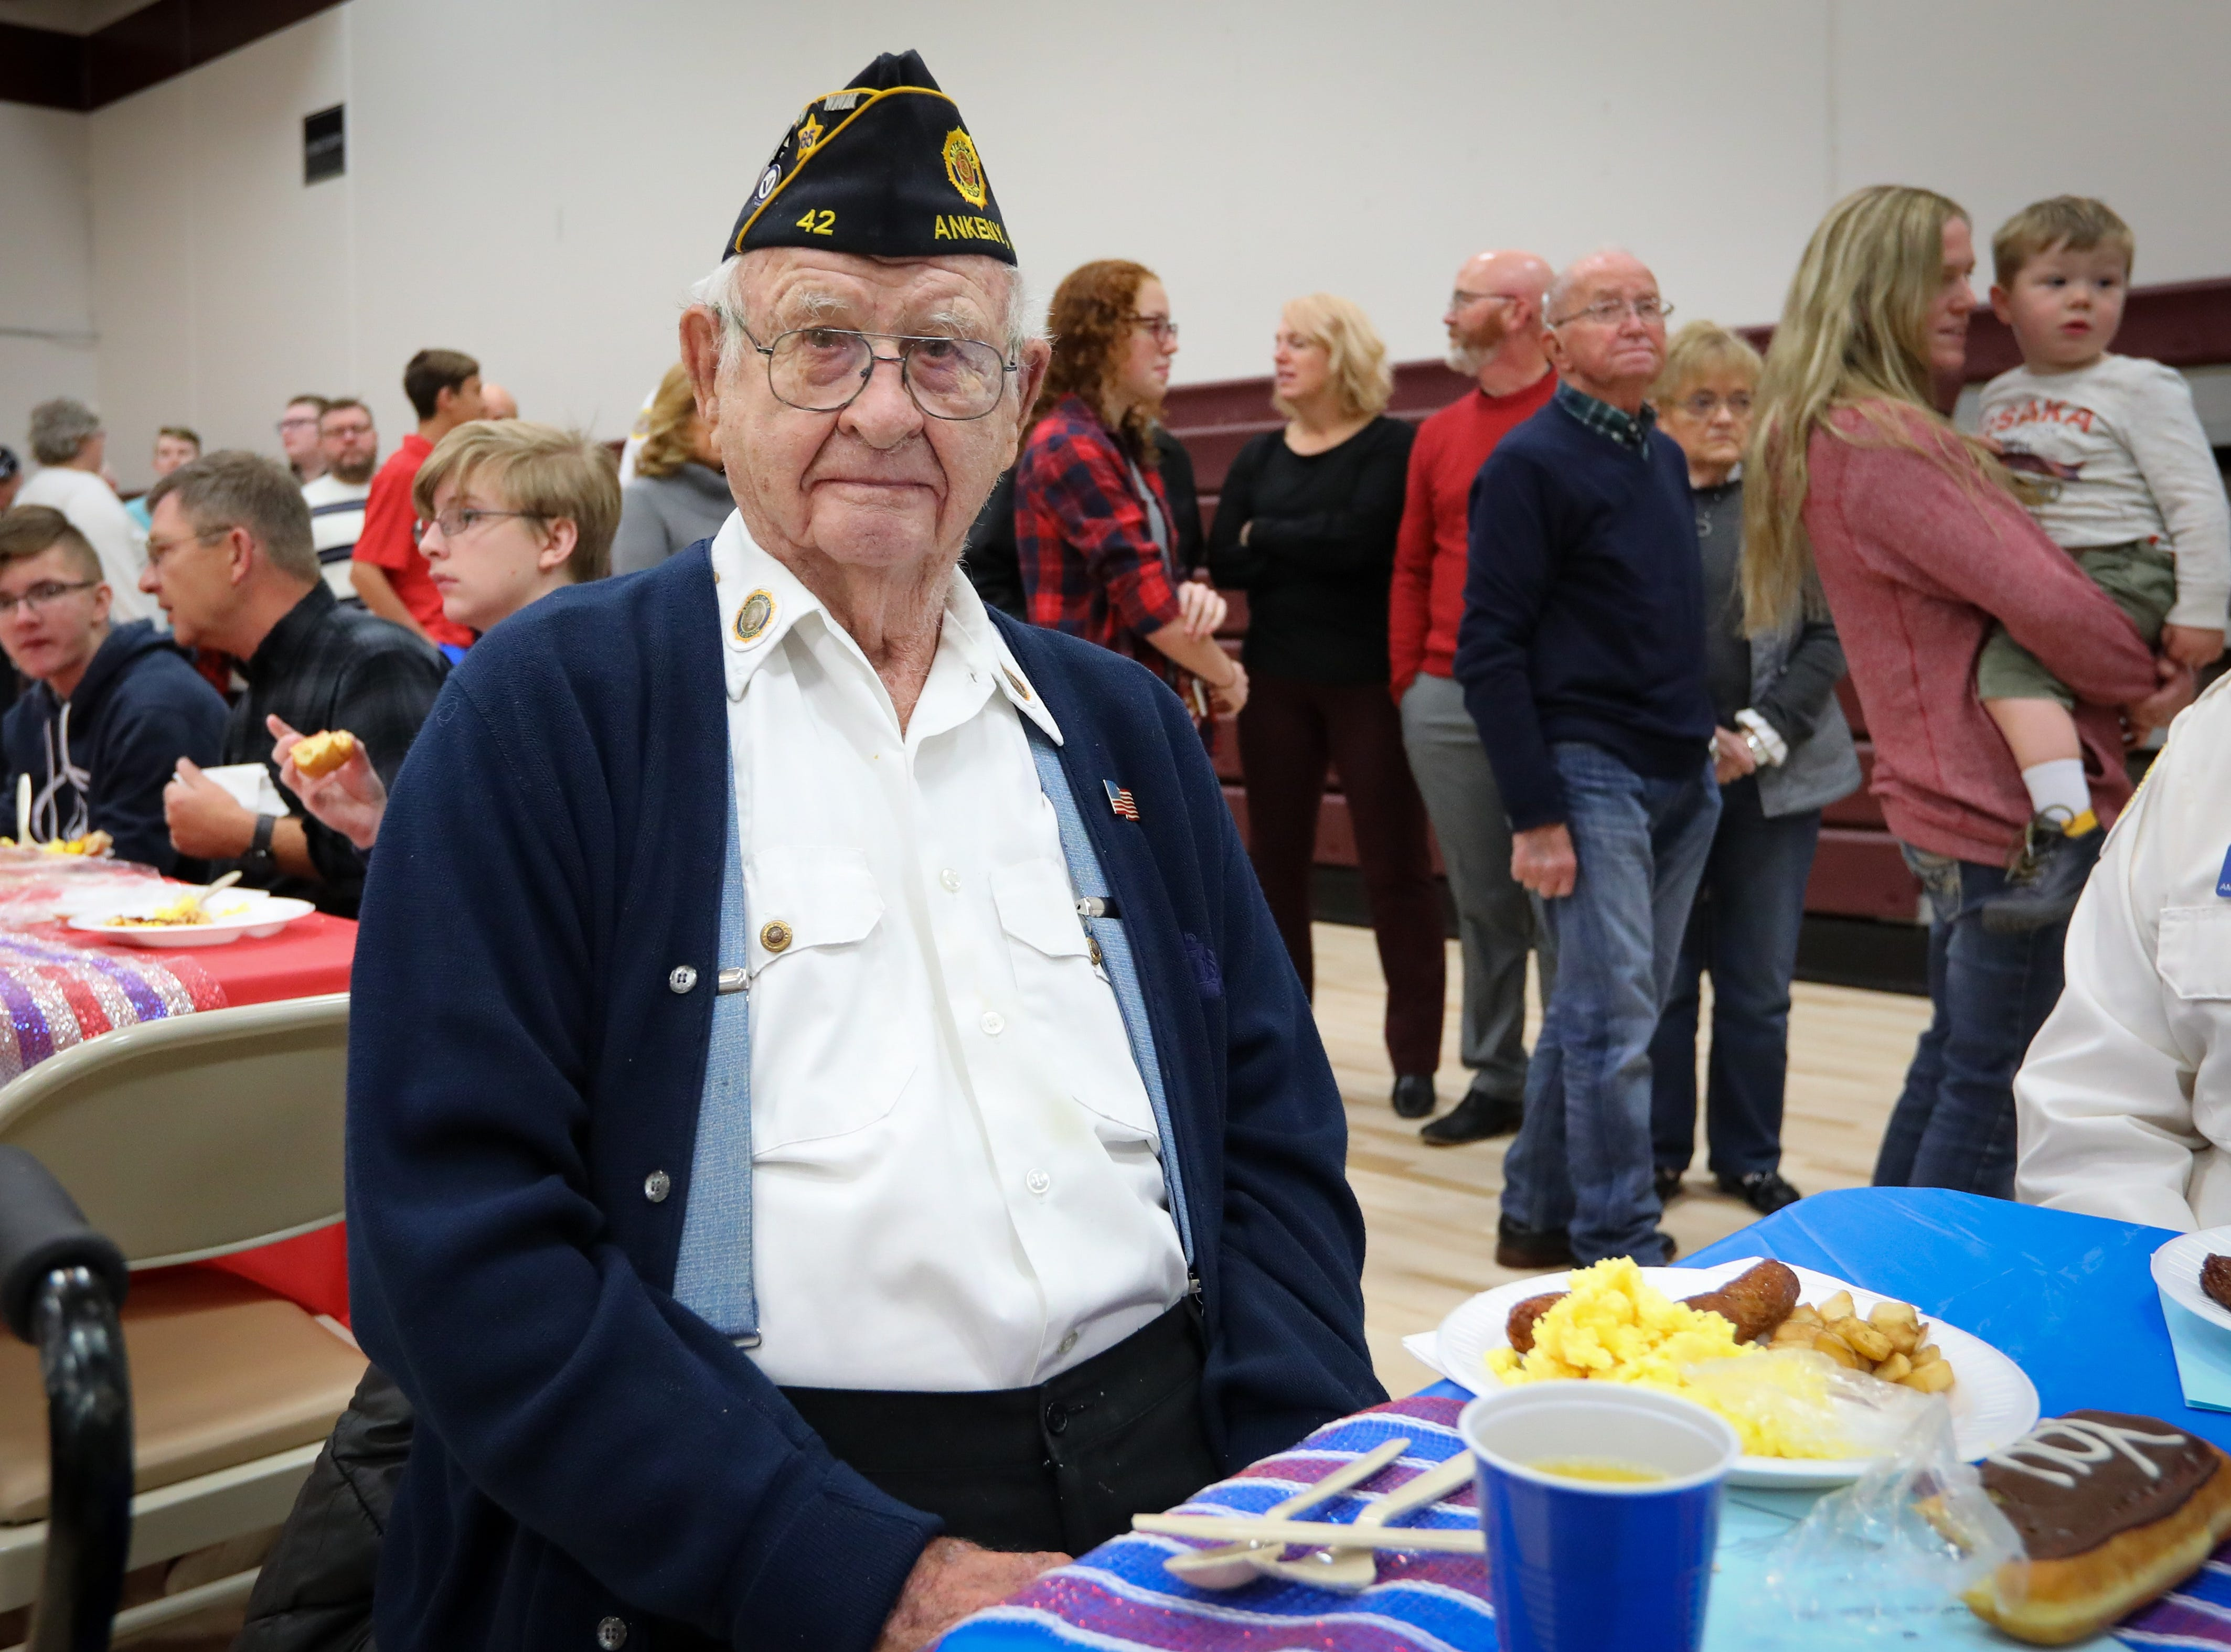 Gerald Ballard, a lifelong Ankeny resident who served in the Coast Guard and is a WWII veteran, poses for a photo during Veterans Day Breakfast at Northview Middle School on Wednesday, Nov. 14, 2018 in Ankeny, Iowa.